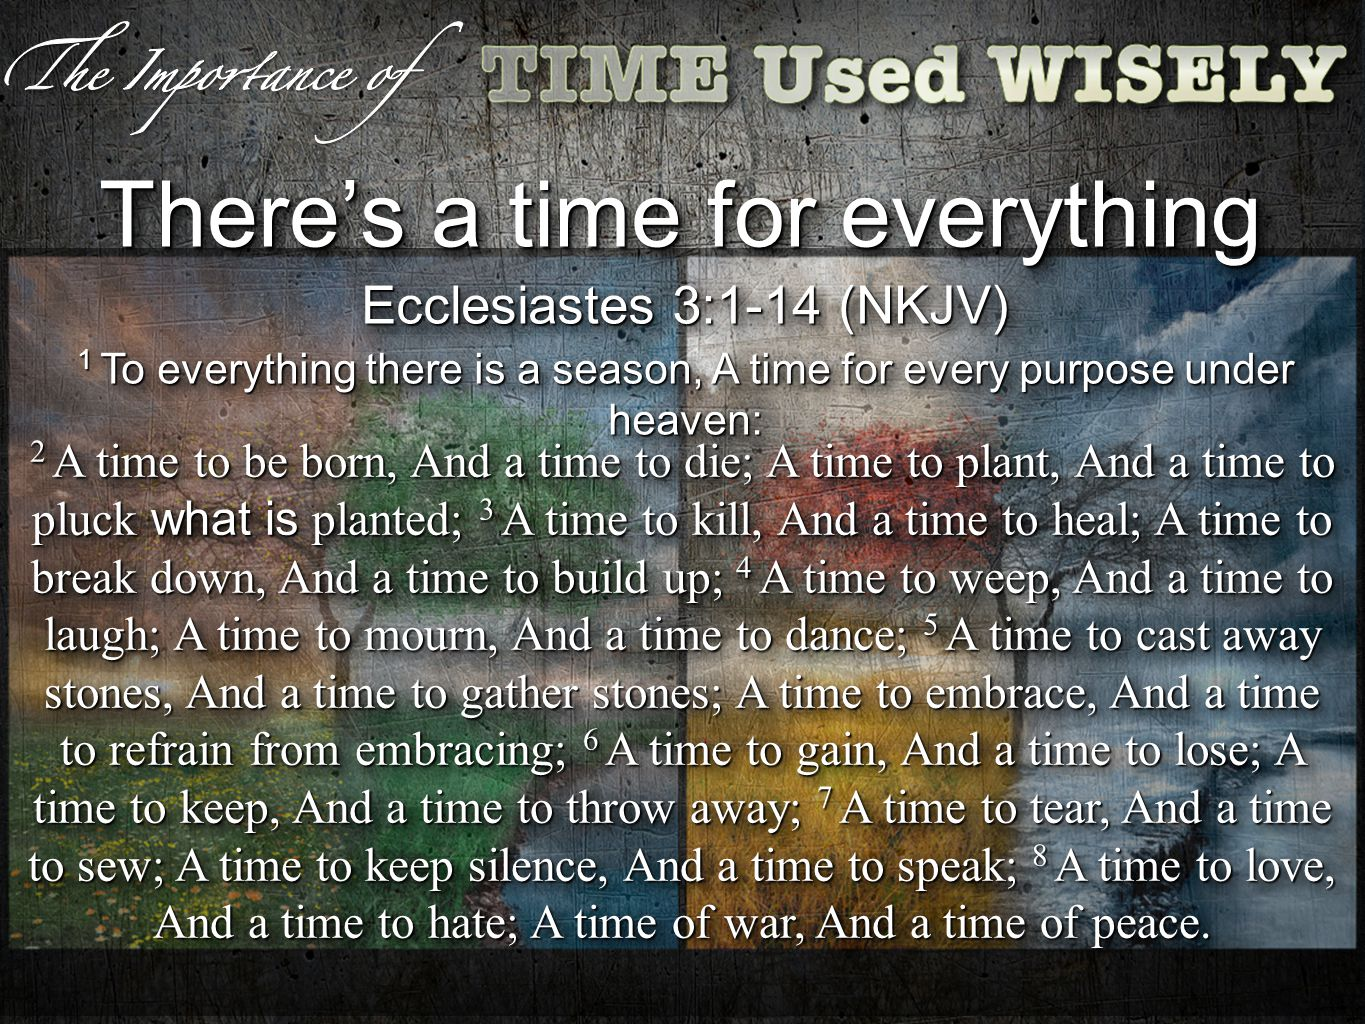 Ephesians 5:8-21 (NKJV) 14 Therefore He says: Awake, you who sleep, Arise from the dead, And Christ will give you light. 15 See then that you walk circumspectly, not as fools but as wise, 16 redeeming the time, because the days are evil.